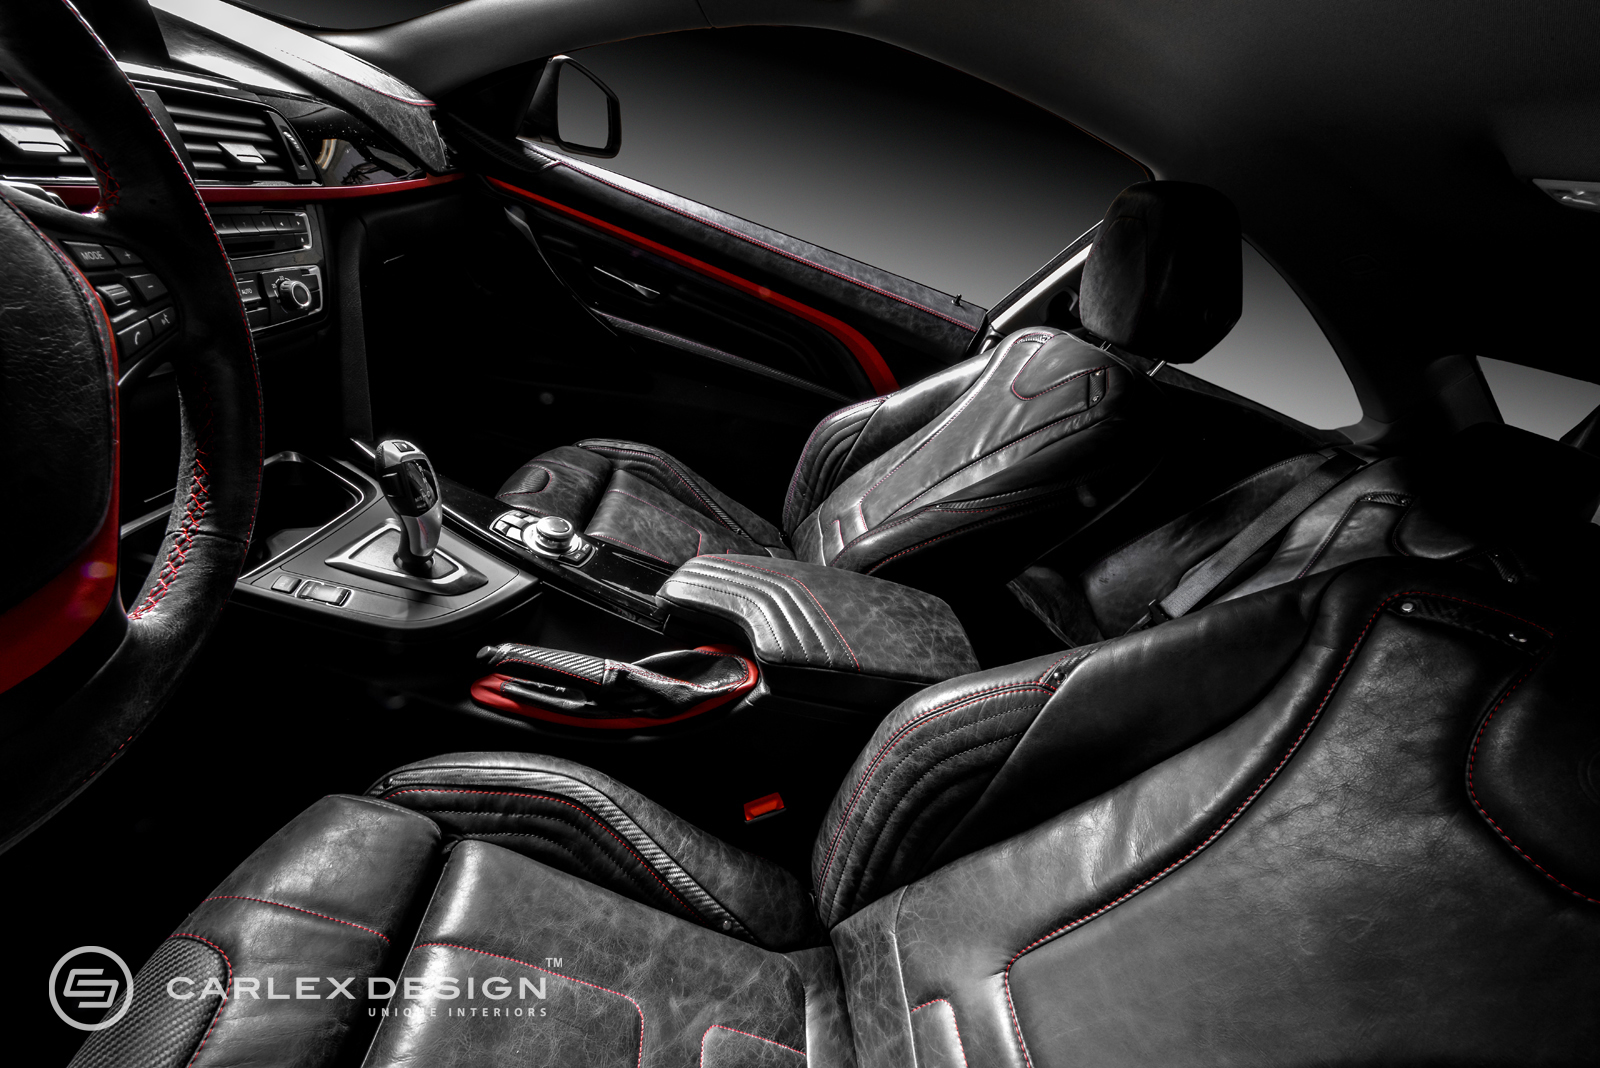 Carlex Design Creates Stunning BMW 4 Series Out Of Leather